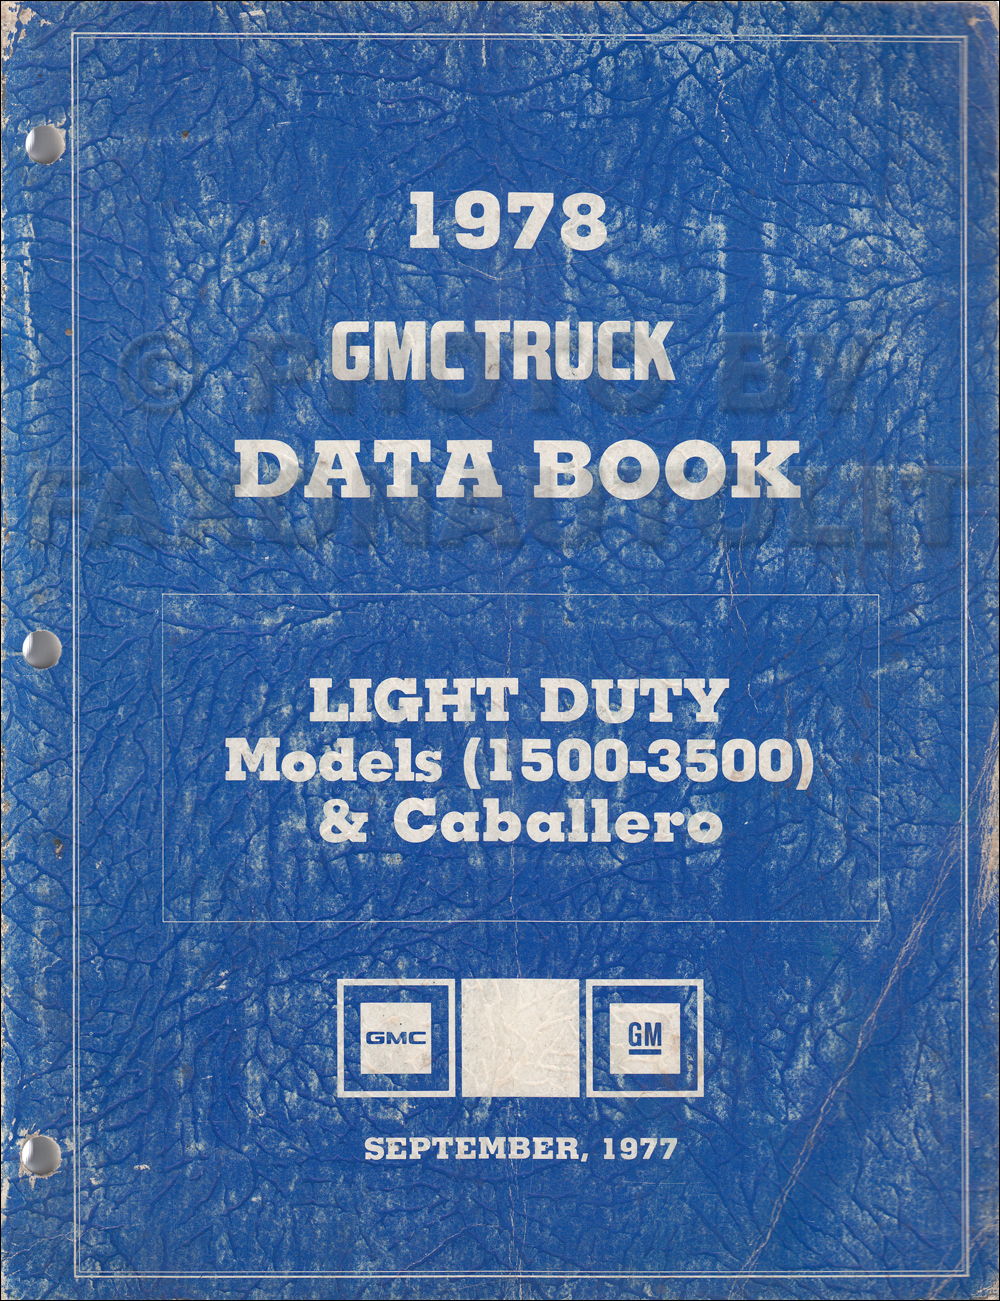 1978 Chevy El Camino Gmc Caballero Wiring Diagram Original Chevrolet Schematic Light Duty Data Book